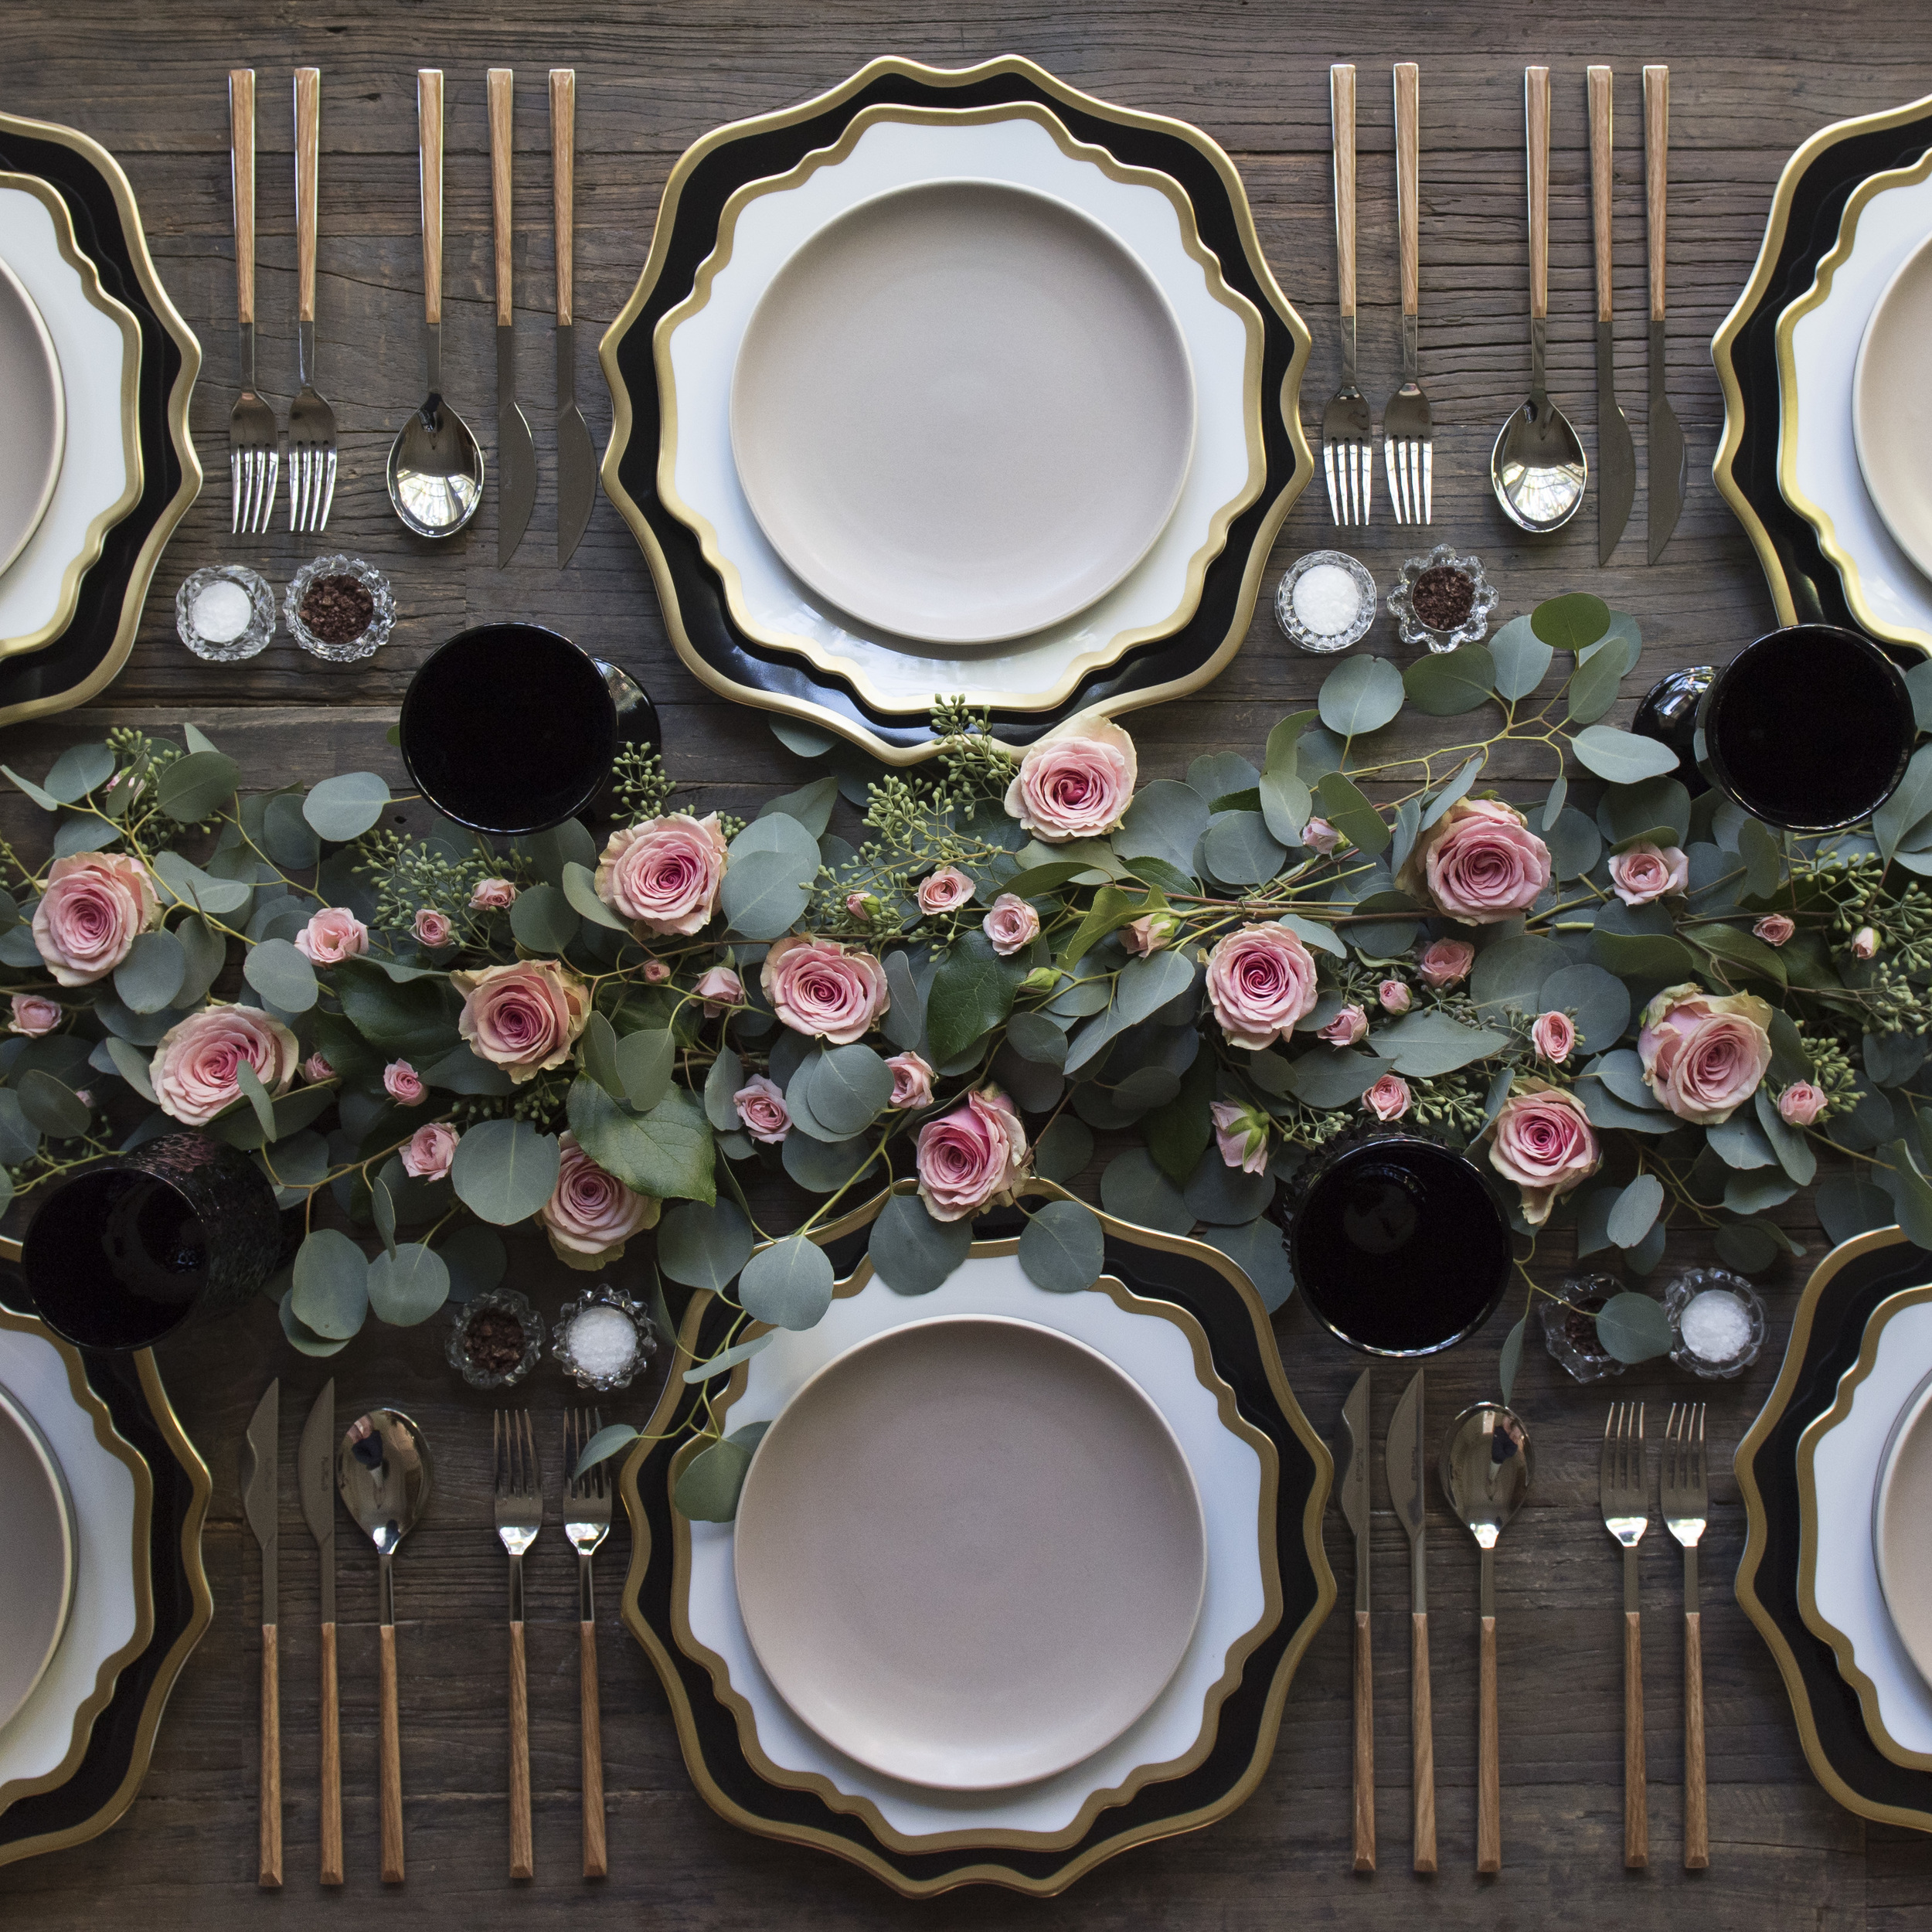 RENT: Anna Weatherley Chargers in Black/Gold + Anna Weatherley Dinnerware in White/Gold + Heath Ceramics in French Grey + Danish Flatware in Teak + Black Vintage Goblets + Antique Crystal Salt Cellars   SHOP: Anna Weatherley Dinnerware in White/Gold